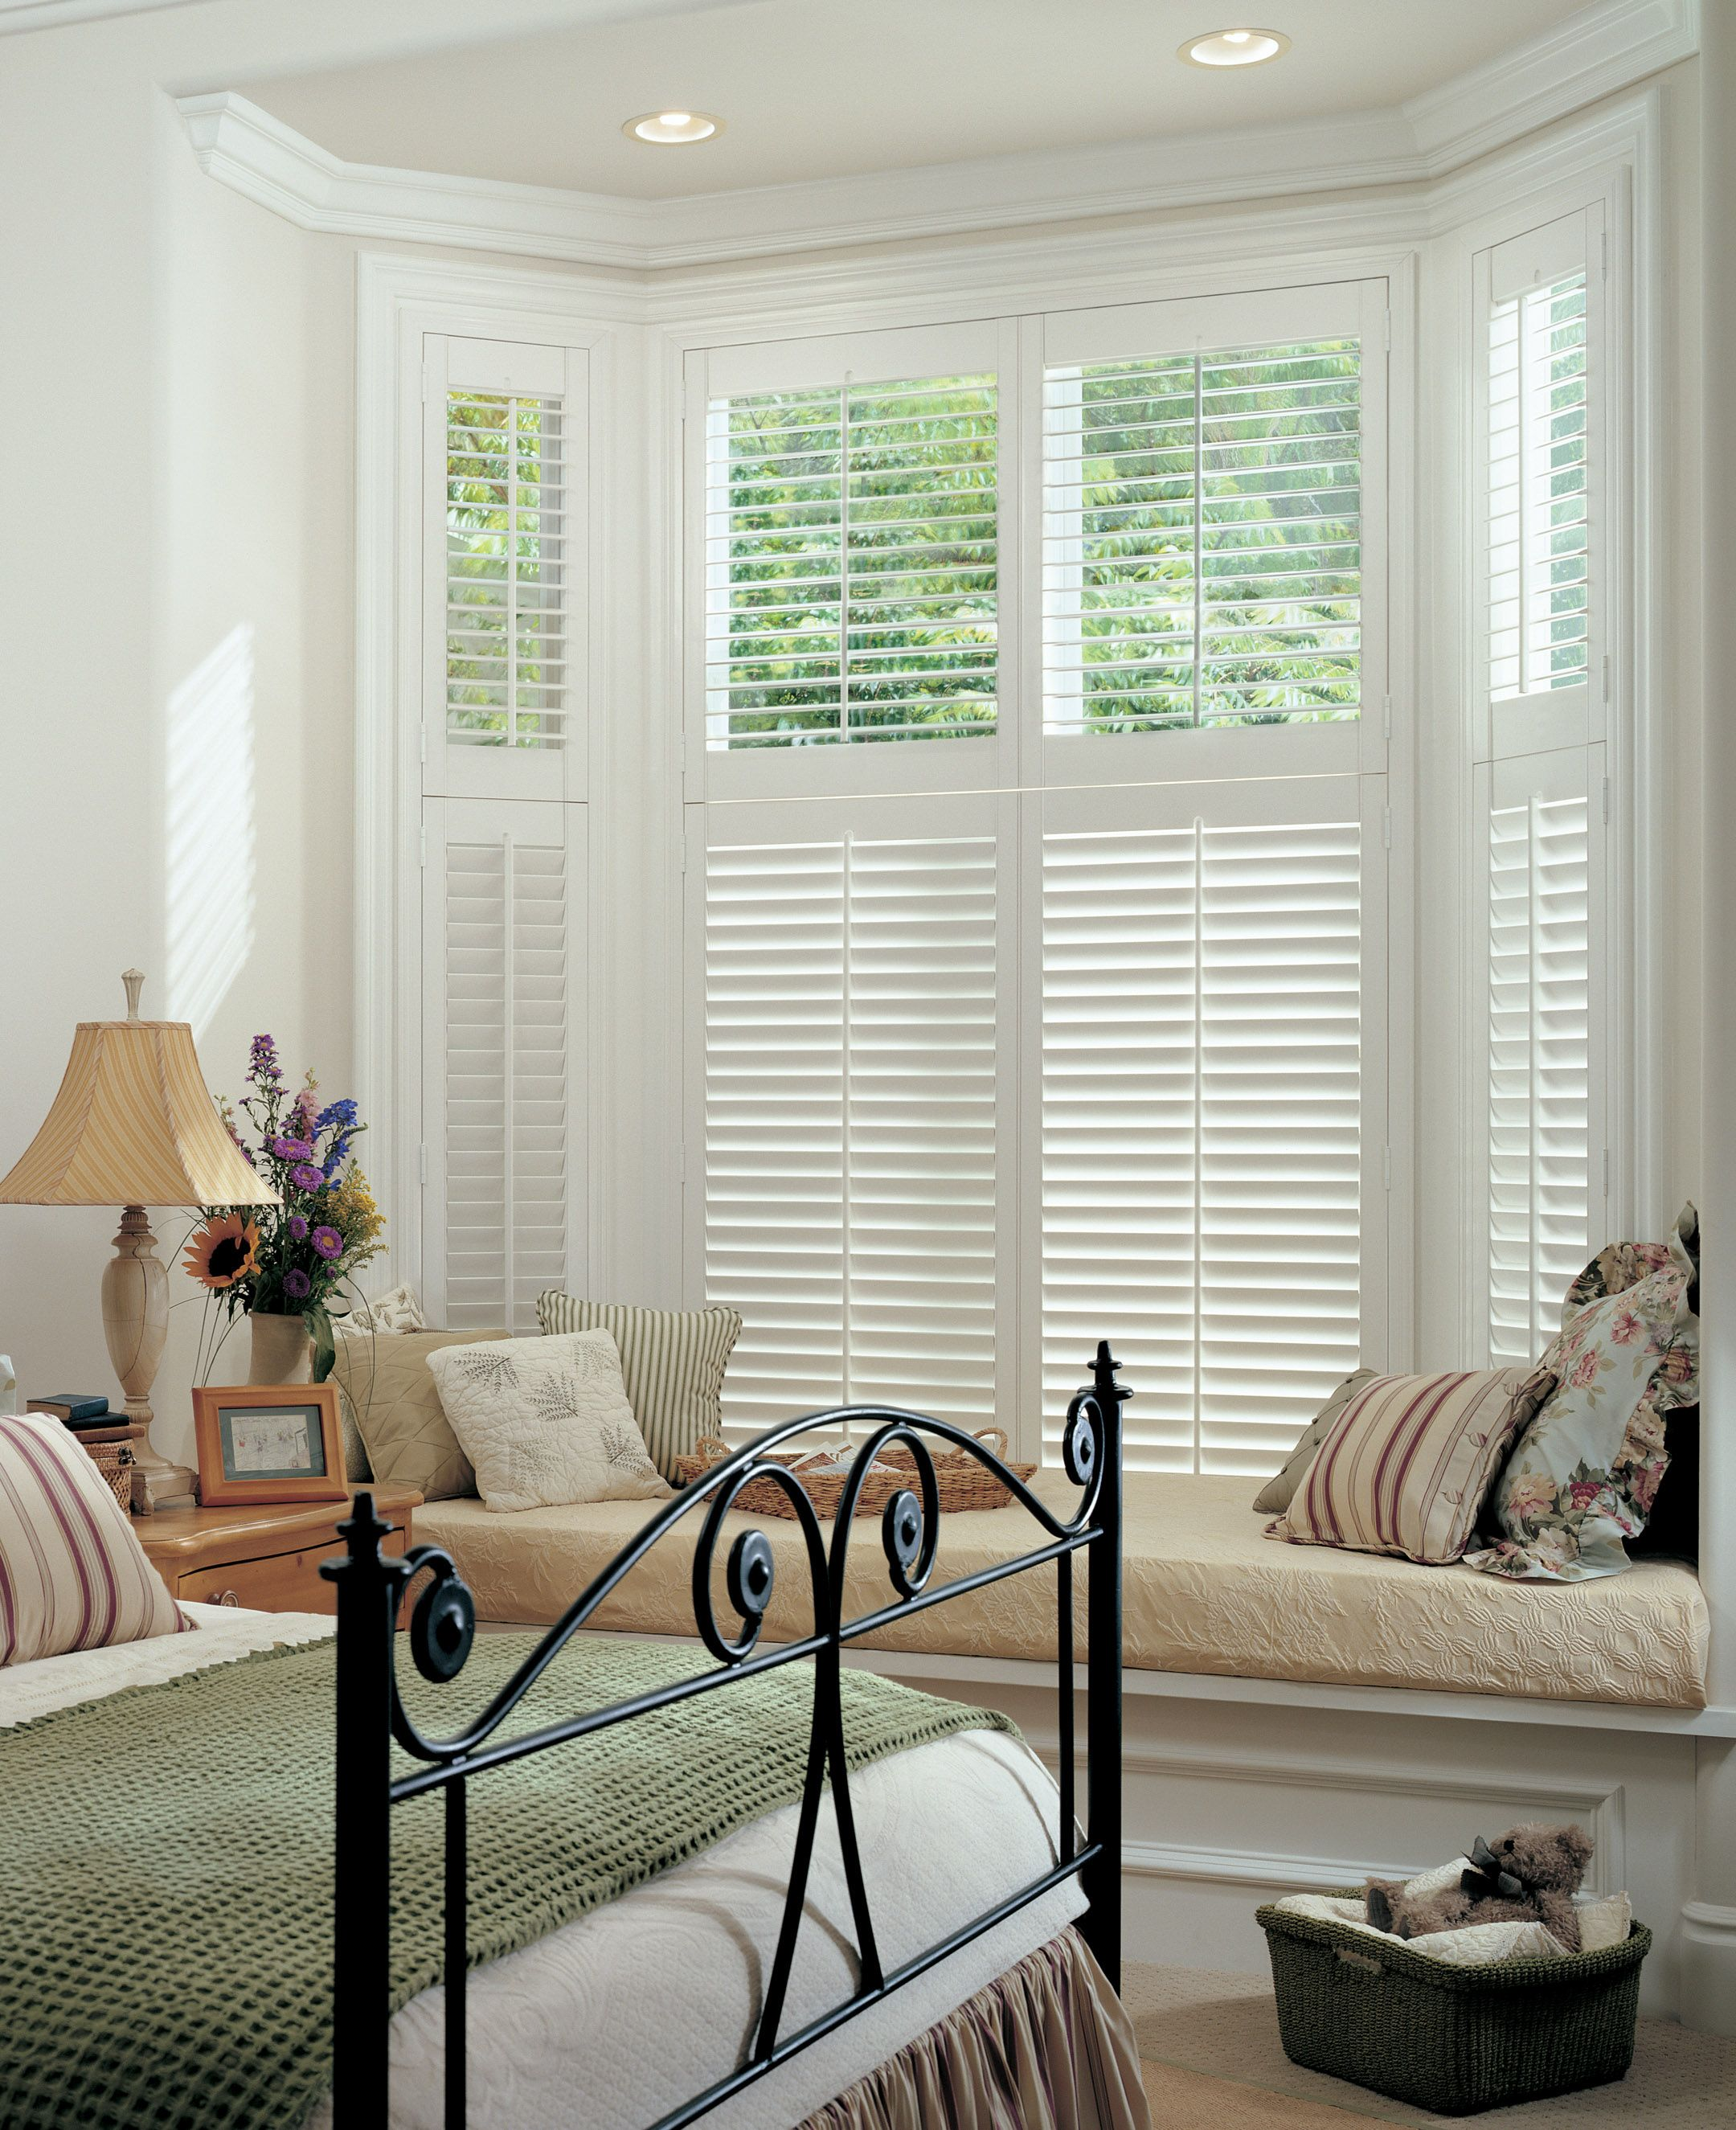 Two Tier White Wood Shutters Blend Perfectly In This Period Home